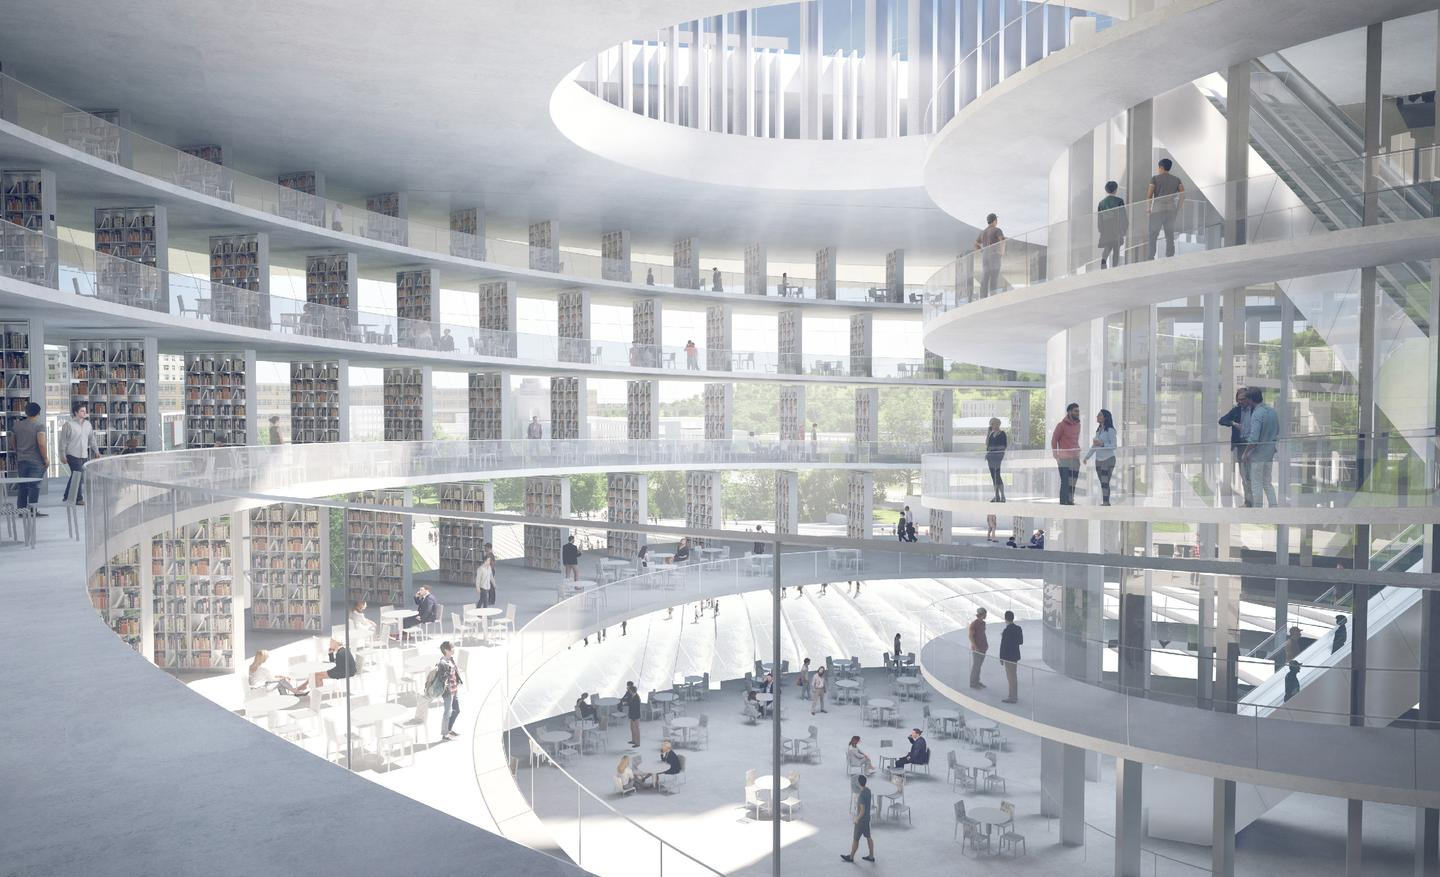 The Shenzhen Institute of Design and Innovation's interior will measure 300,000 sq m (roughly 3.2 million sq ft)